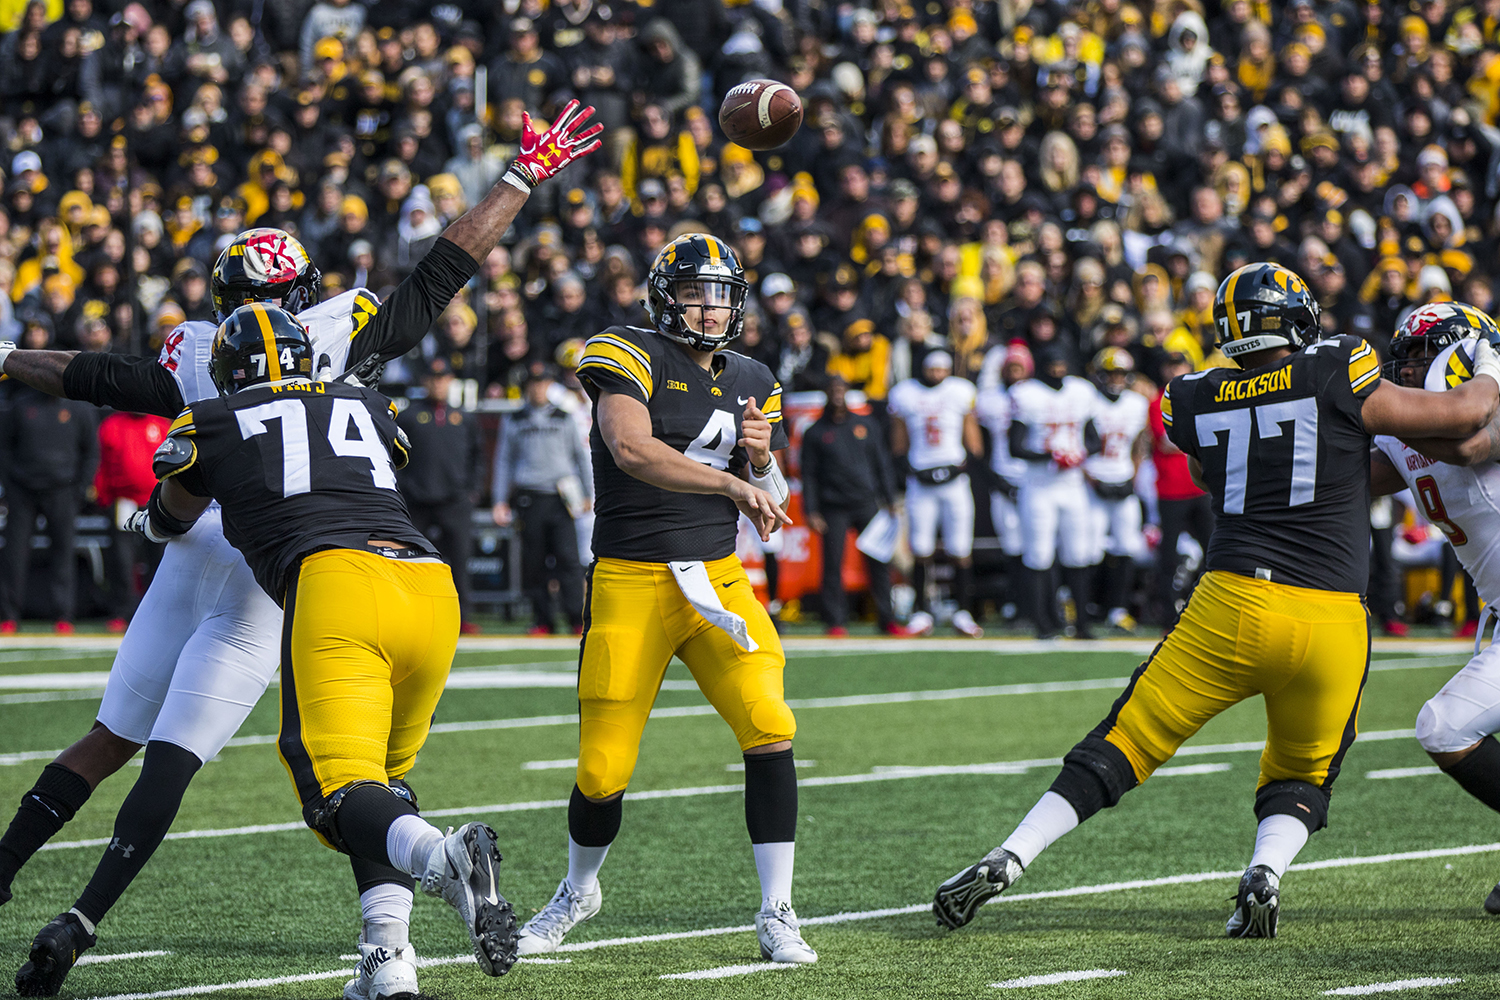 Iowa quarterback Nate Stanley throws a pass during the Iowa/Maryland homecoming football game at Kinnick Stadium on Saturday, Oct. 20, 2018. The Hawkeyes defeated the Terrapins, 23-0.